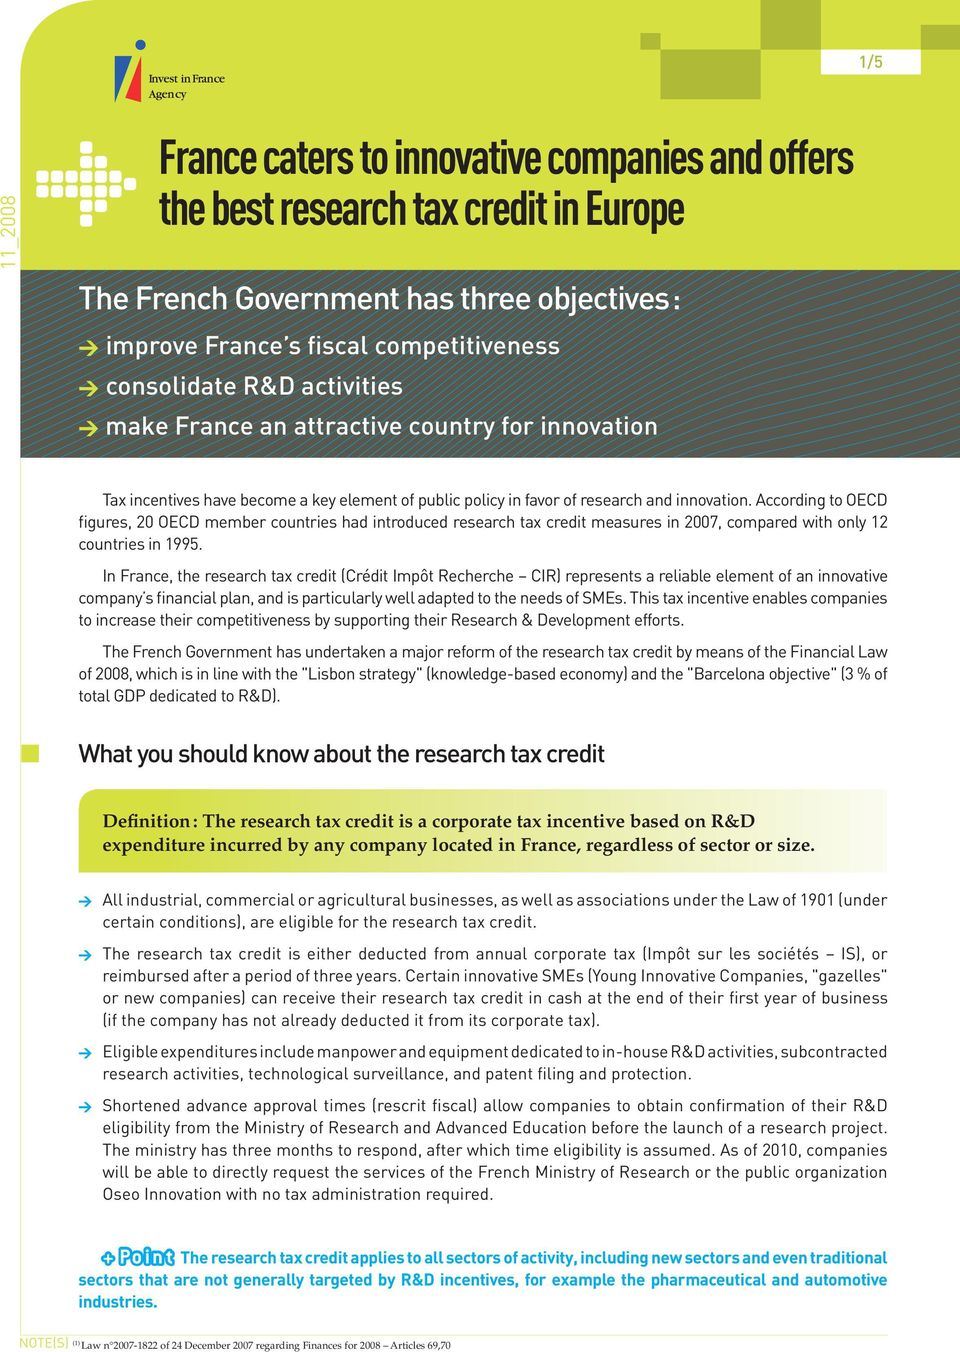 I Frace, the research tax credit (Crédit Impôt Recherche CIR) represets a reliable elemet of a iovative compay s fiacial pla, ad is particularly well adapted to the eeds of SMEs.